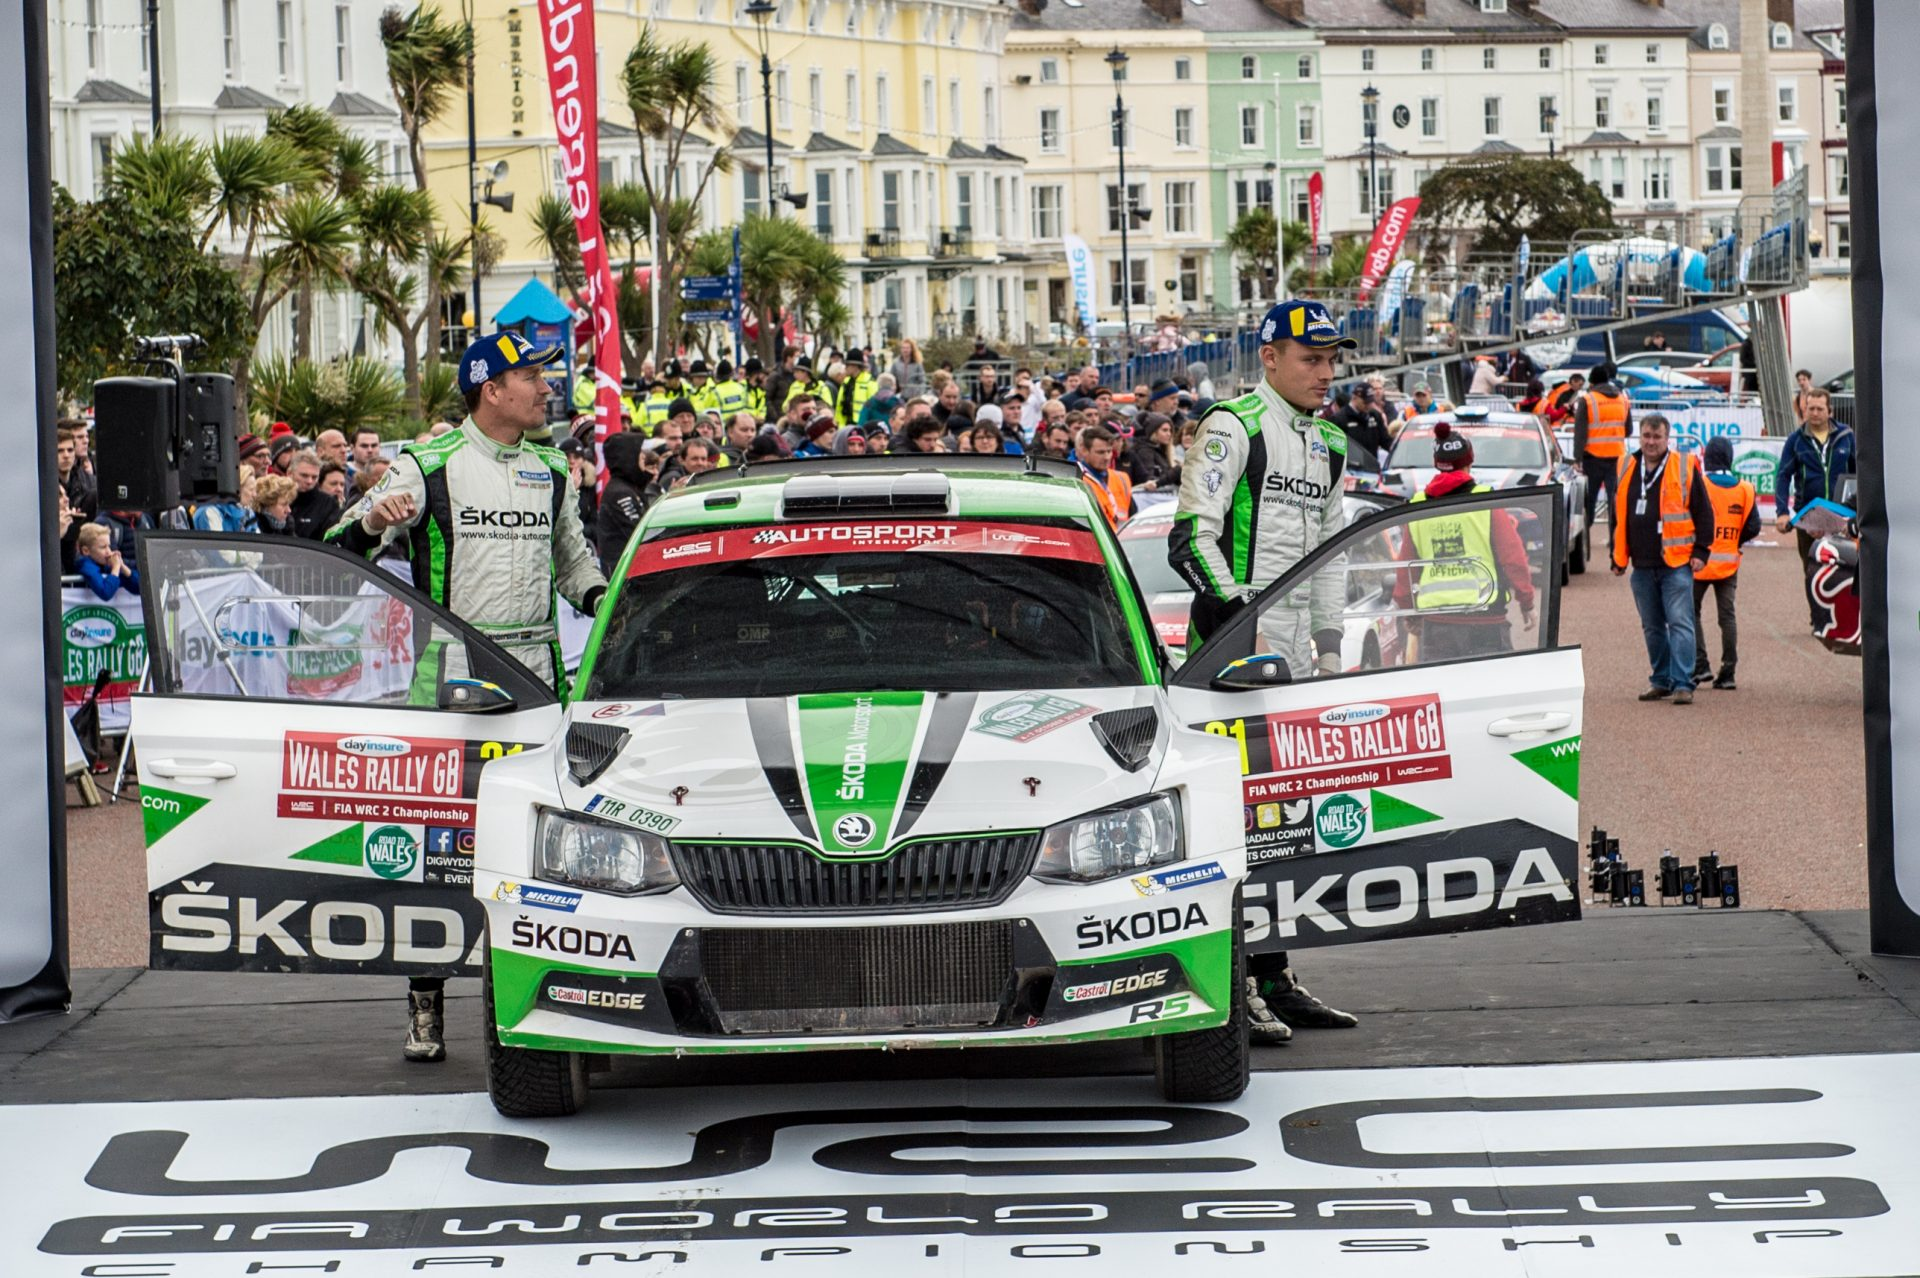 Wales Rally GB 2018: Latest News and Updates